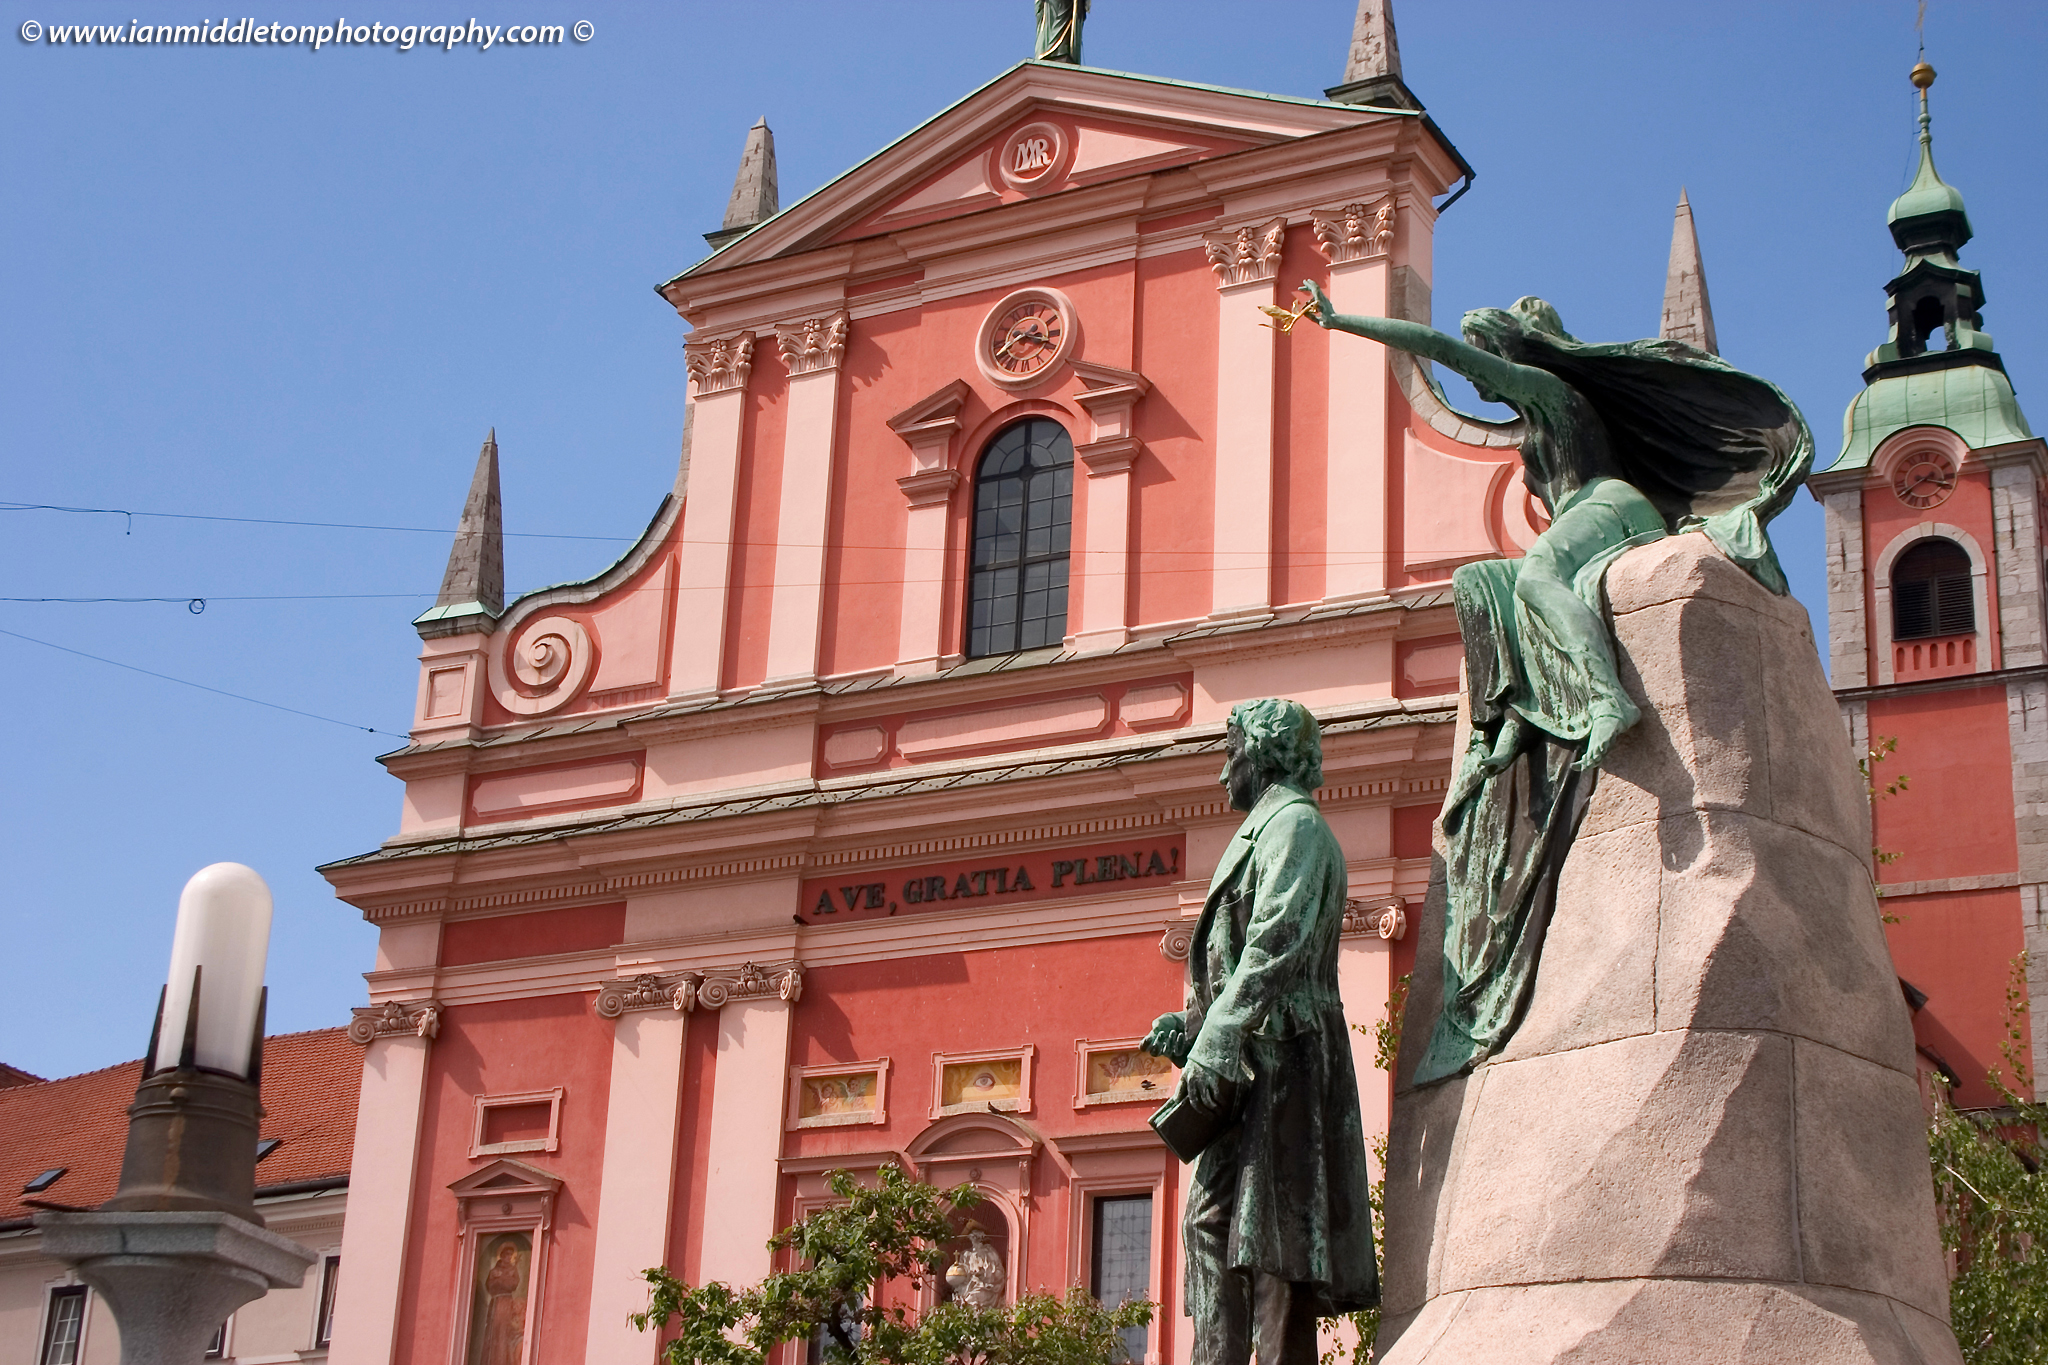 Preseren Square in Ljubljana, Slovenia. The beautiful Franciscan church and Preseren statue.